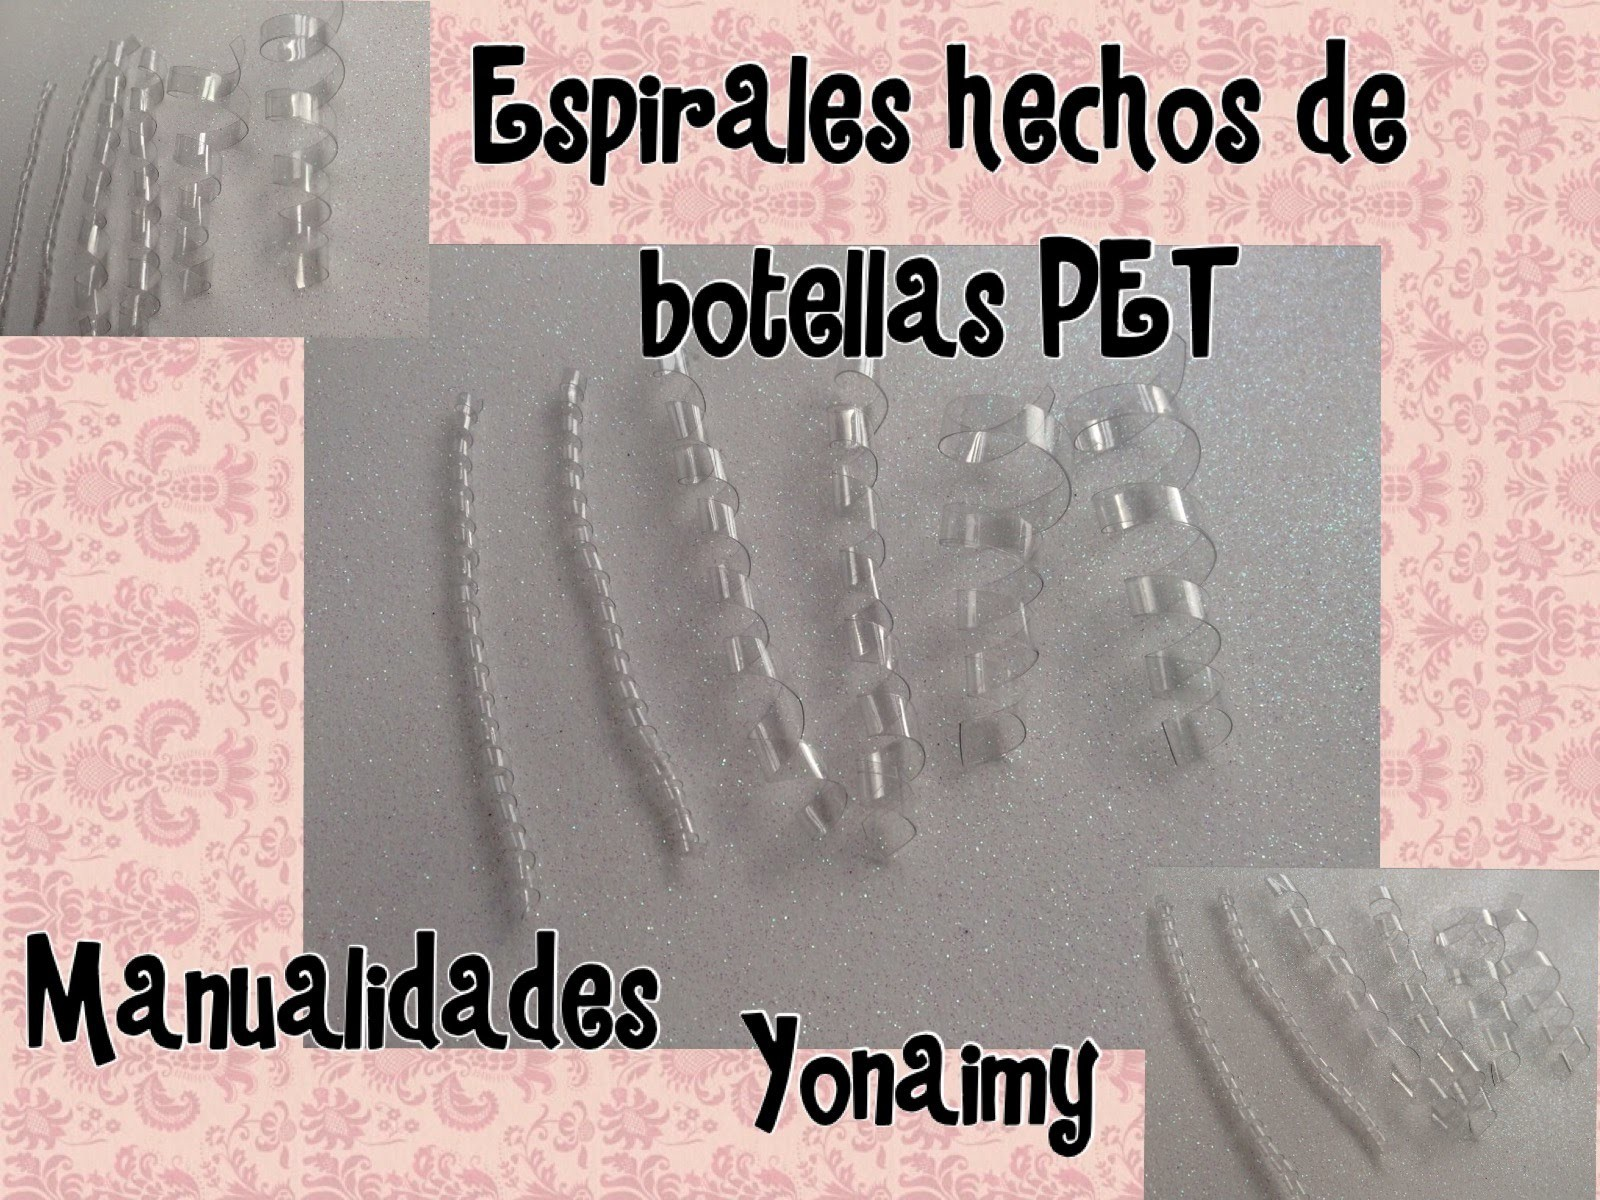 ESPIRALES HECHOS CON BOTELLAS RECICLABLES PET